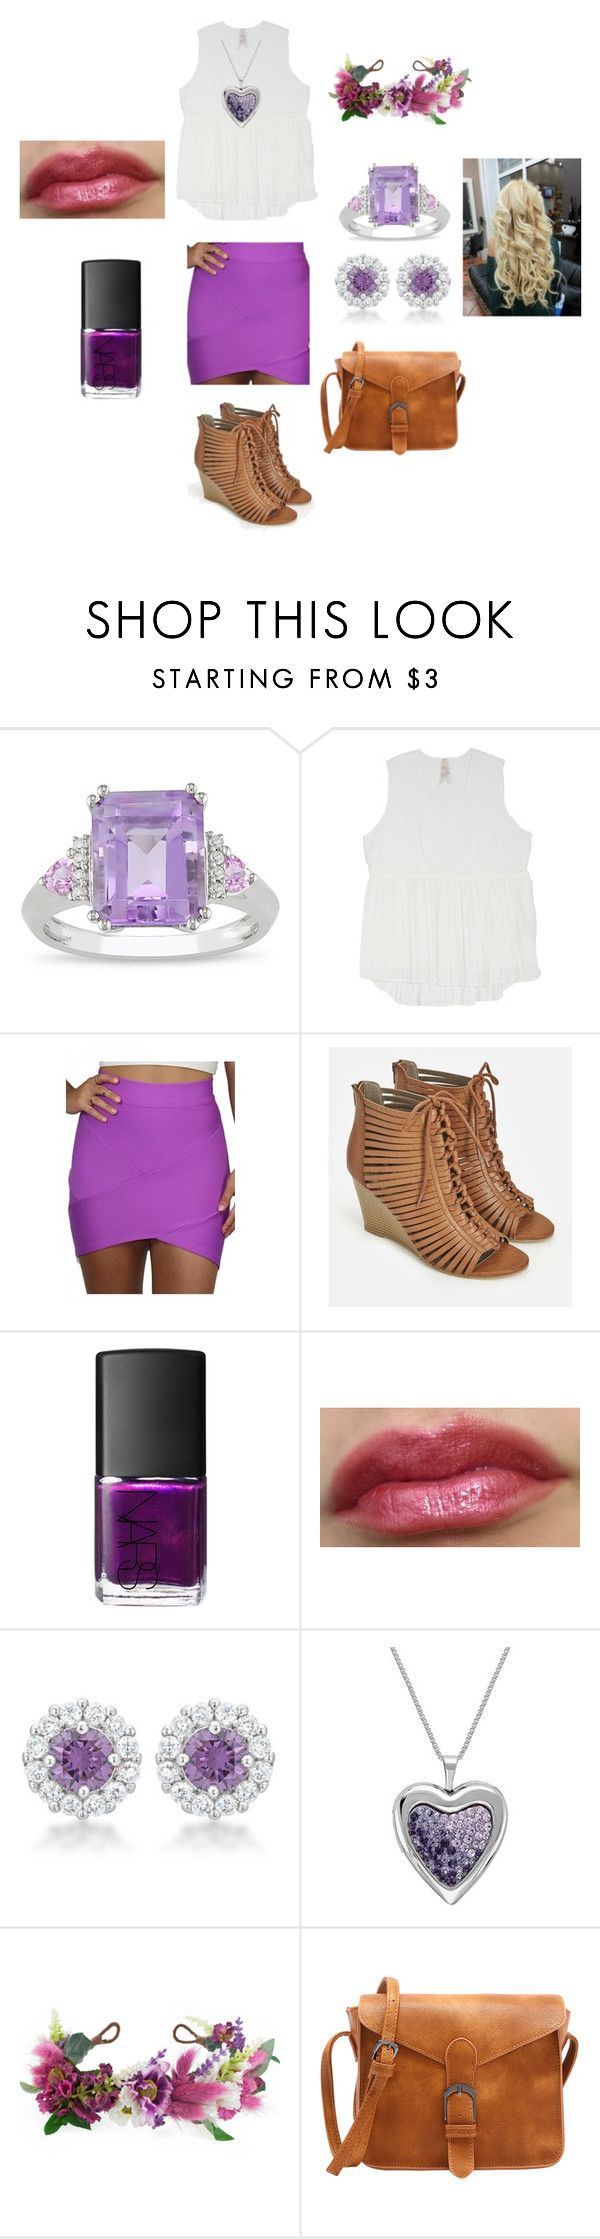 """You are the daughter of Rapunzel"" by shamlesslychic-dcxxi ❤ liked on Polyvore featuring beauty, Ice, Melissa McCarthy Seven7, JustFab, NARS Cosmetics, Rock 'N Rose and plus size clothing"